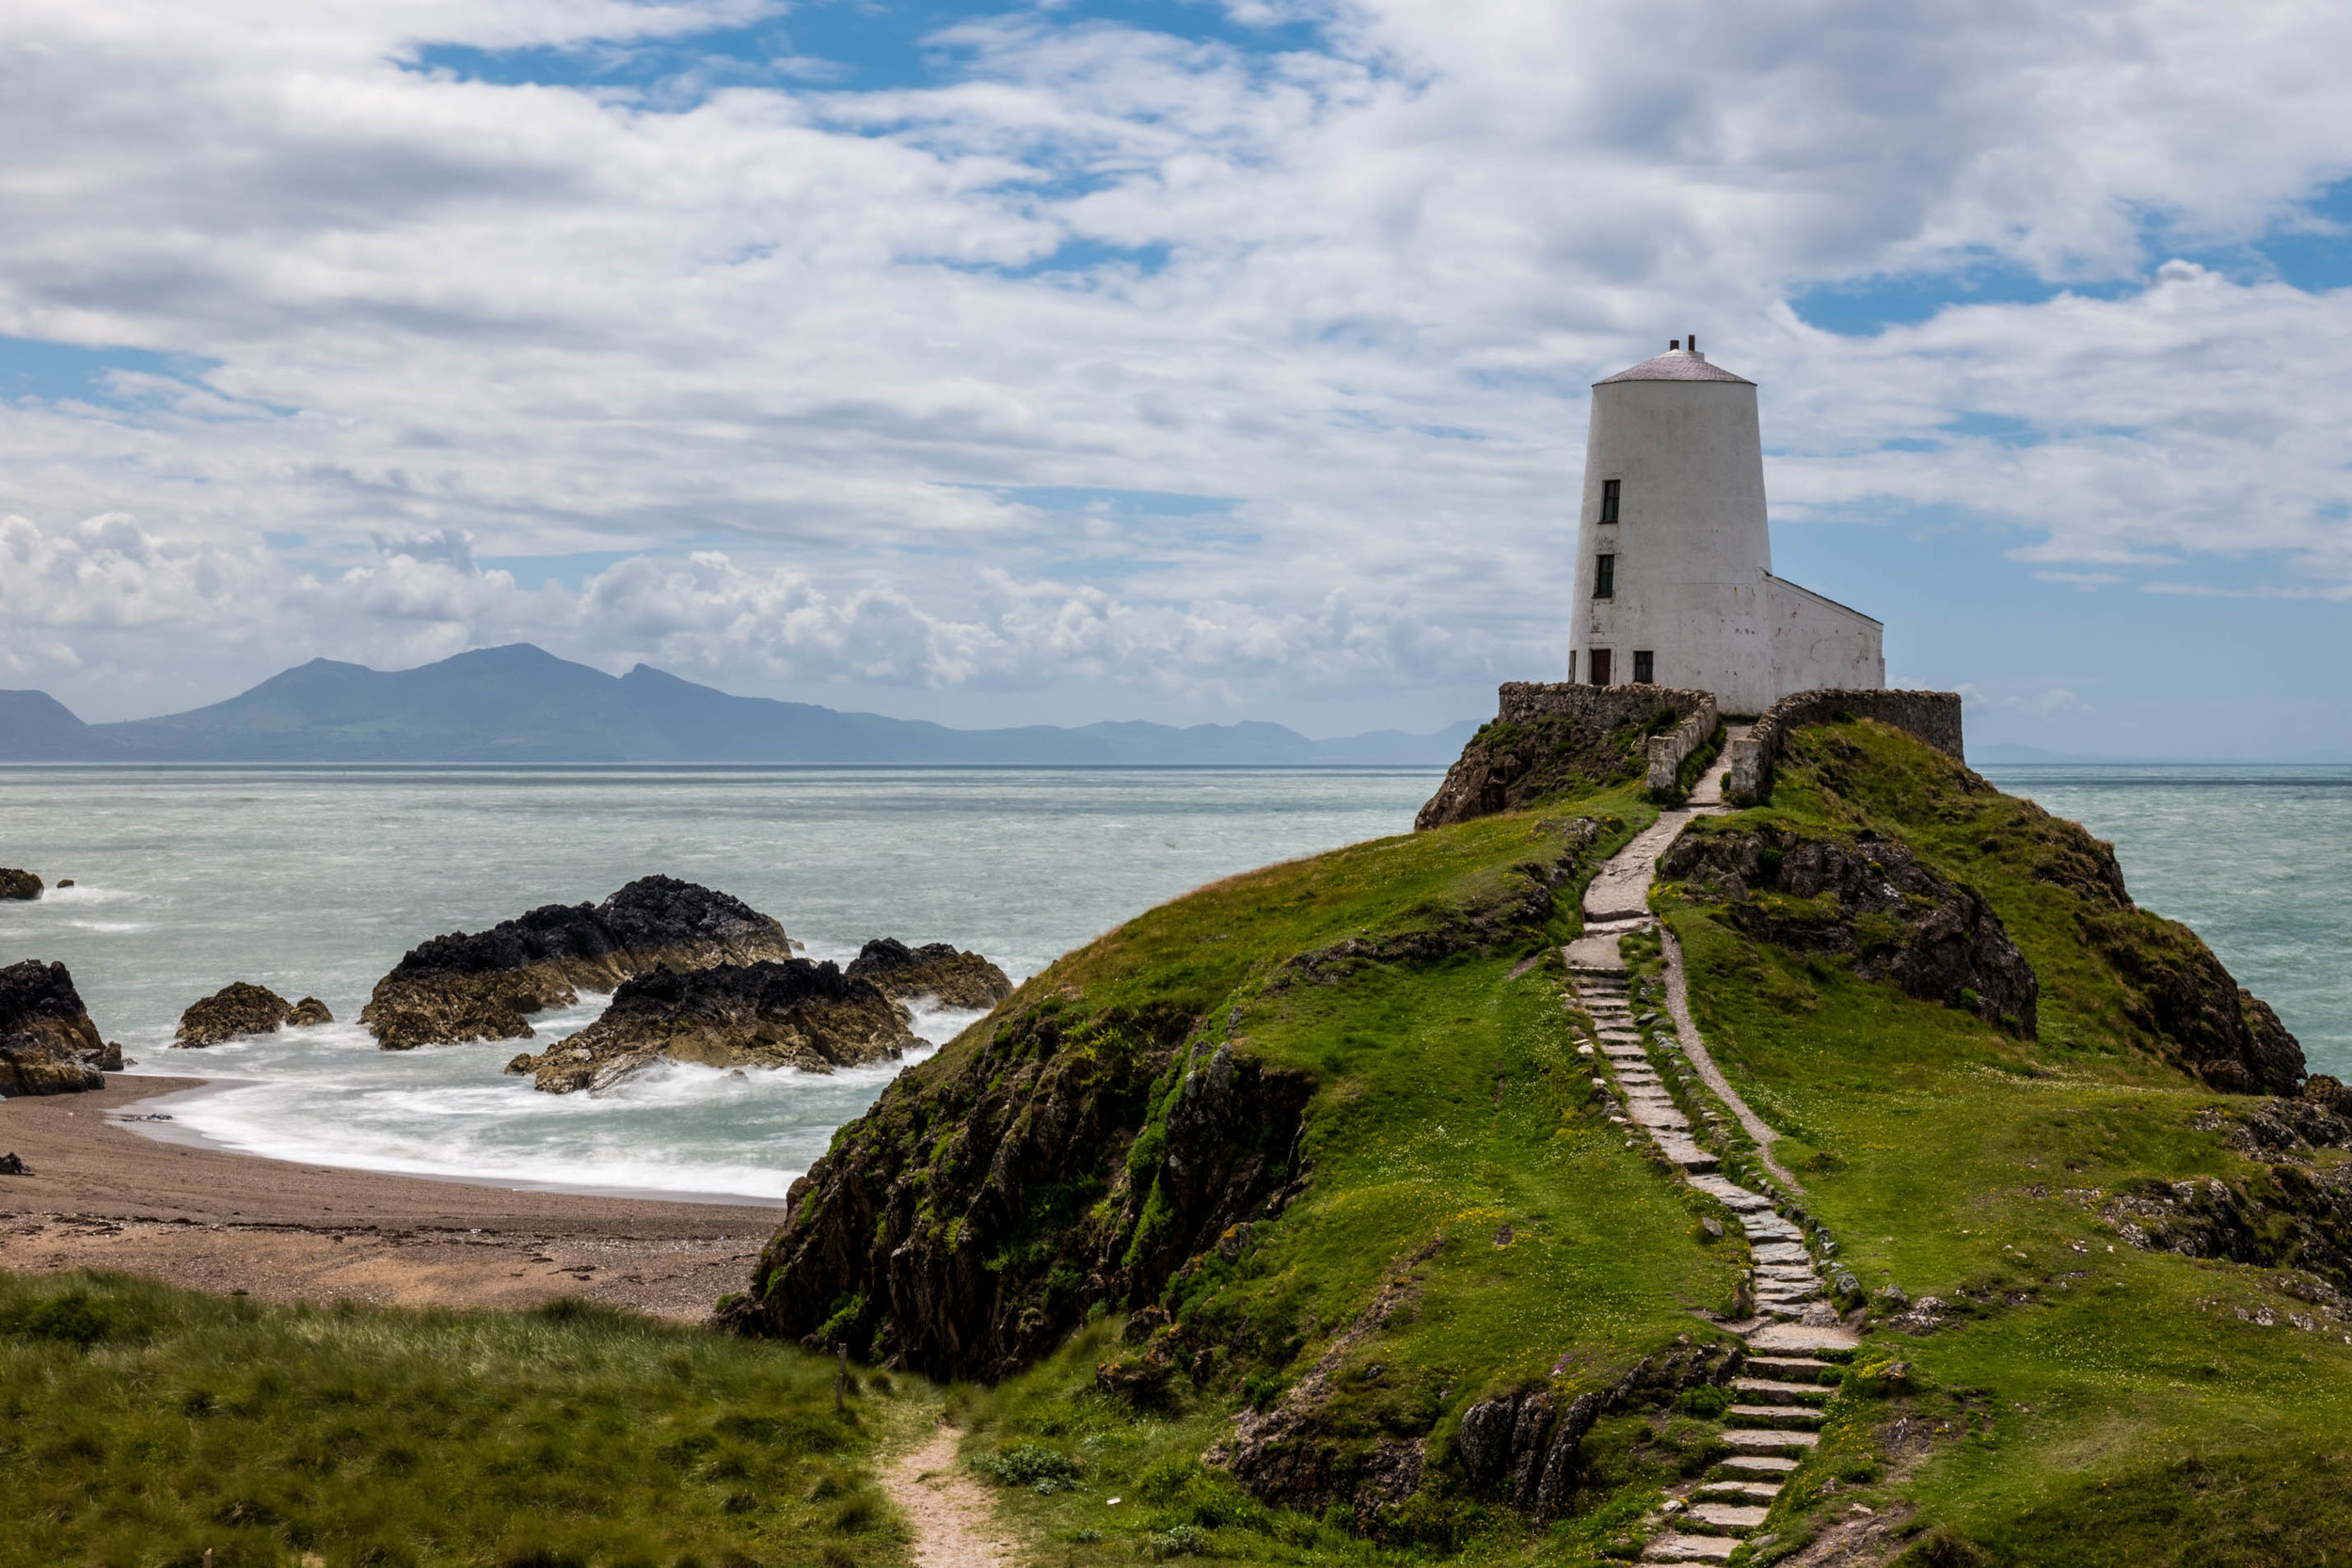 The lighthouse on the edge of Llanddwyn Island, northern Wales